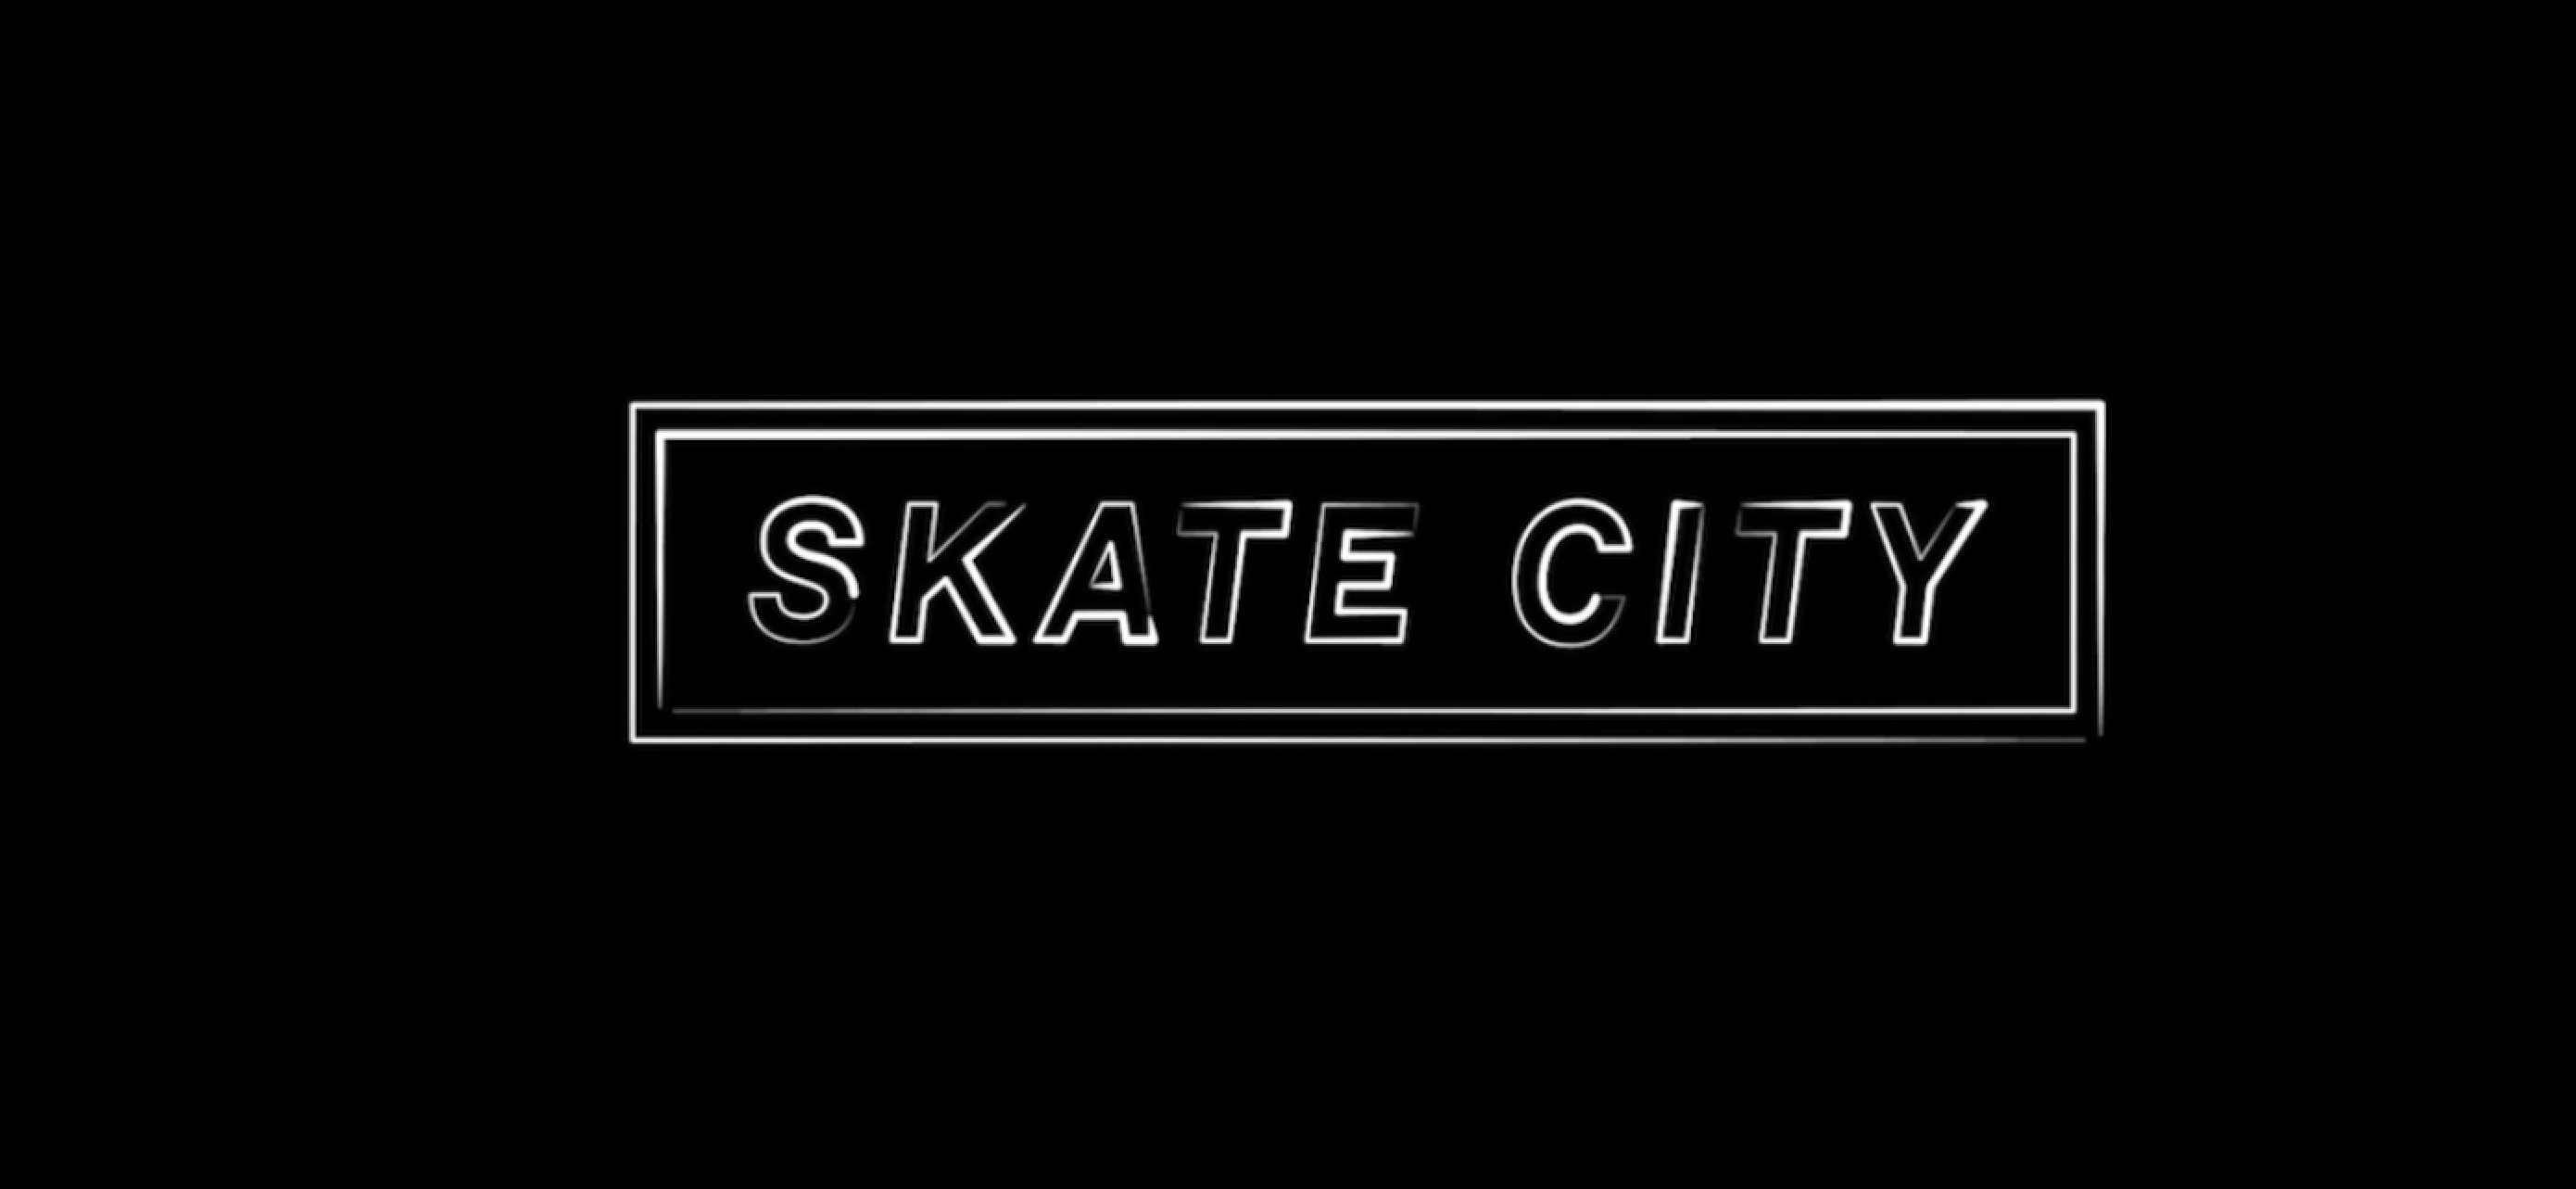 Apple Arcade: 'Skate City' Review – An Enjoyable but Barebones Skating Simulator